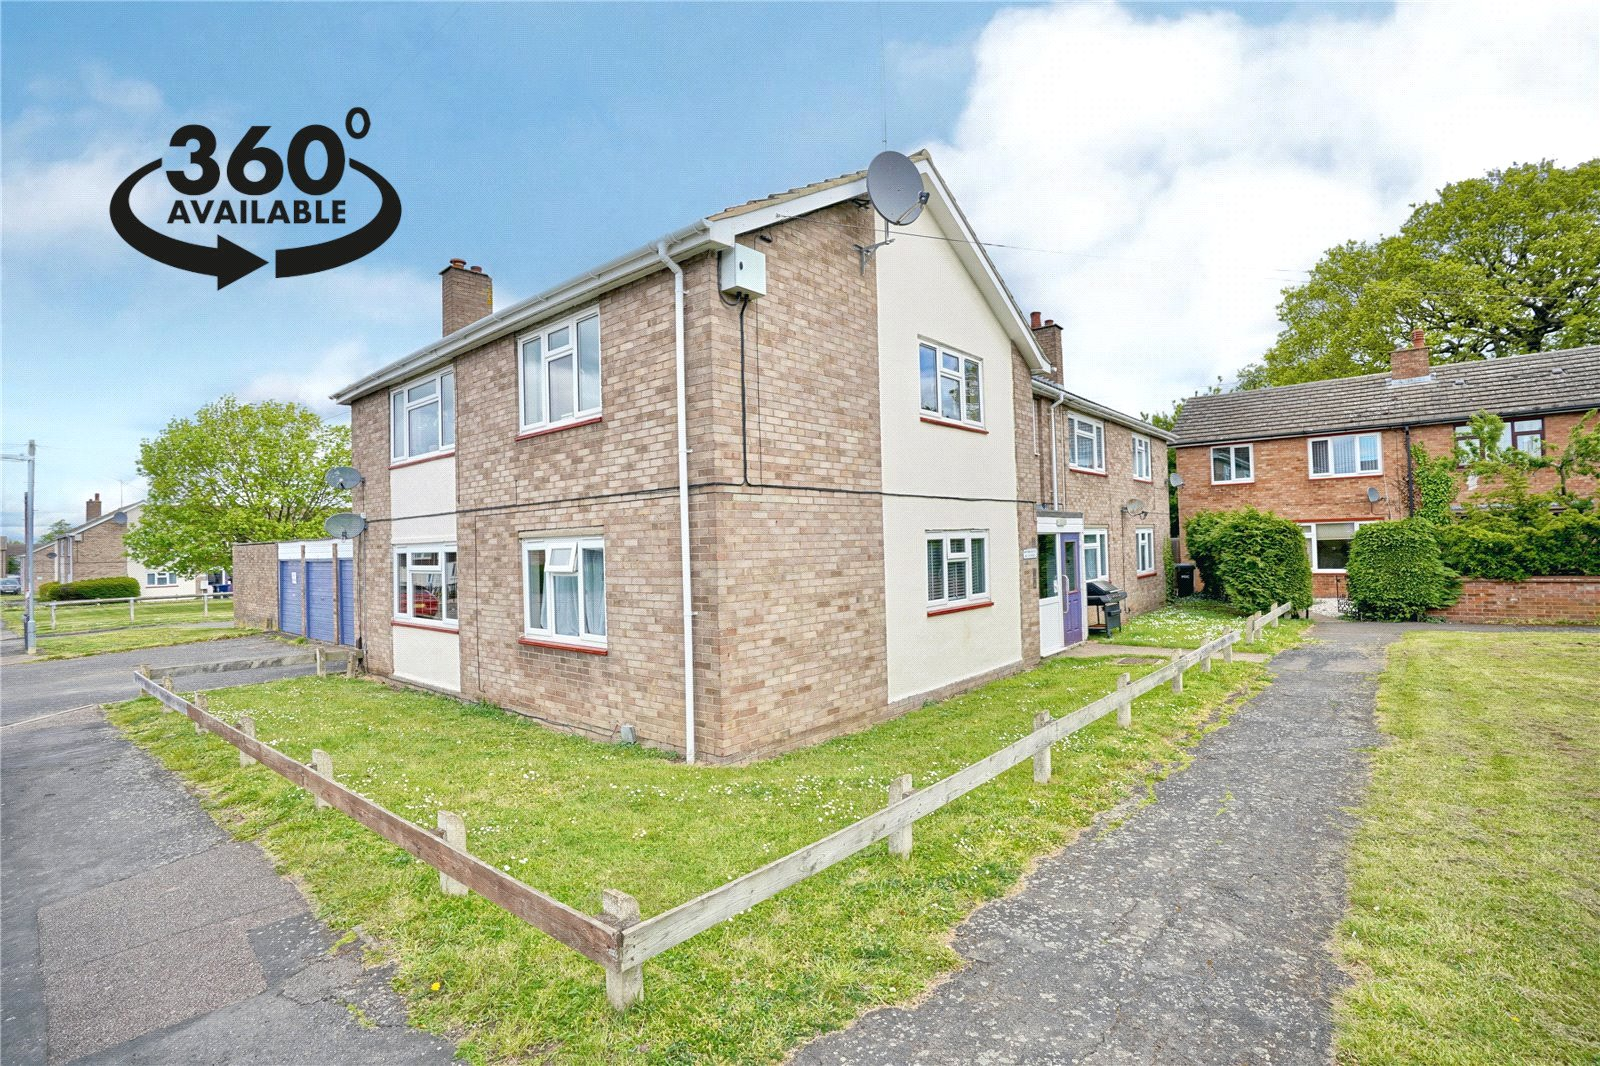 2 bed apartment for sale in Wintringham Road, St. Neots  - Property Image 1